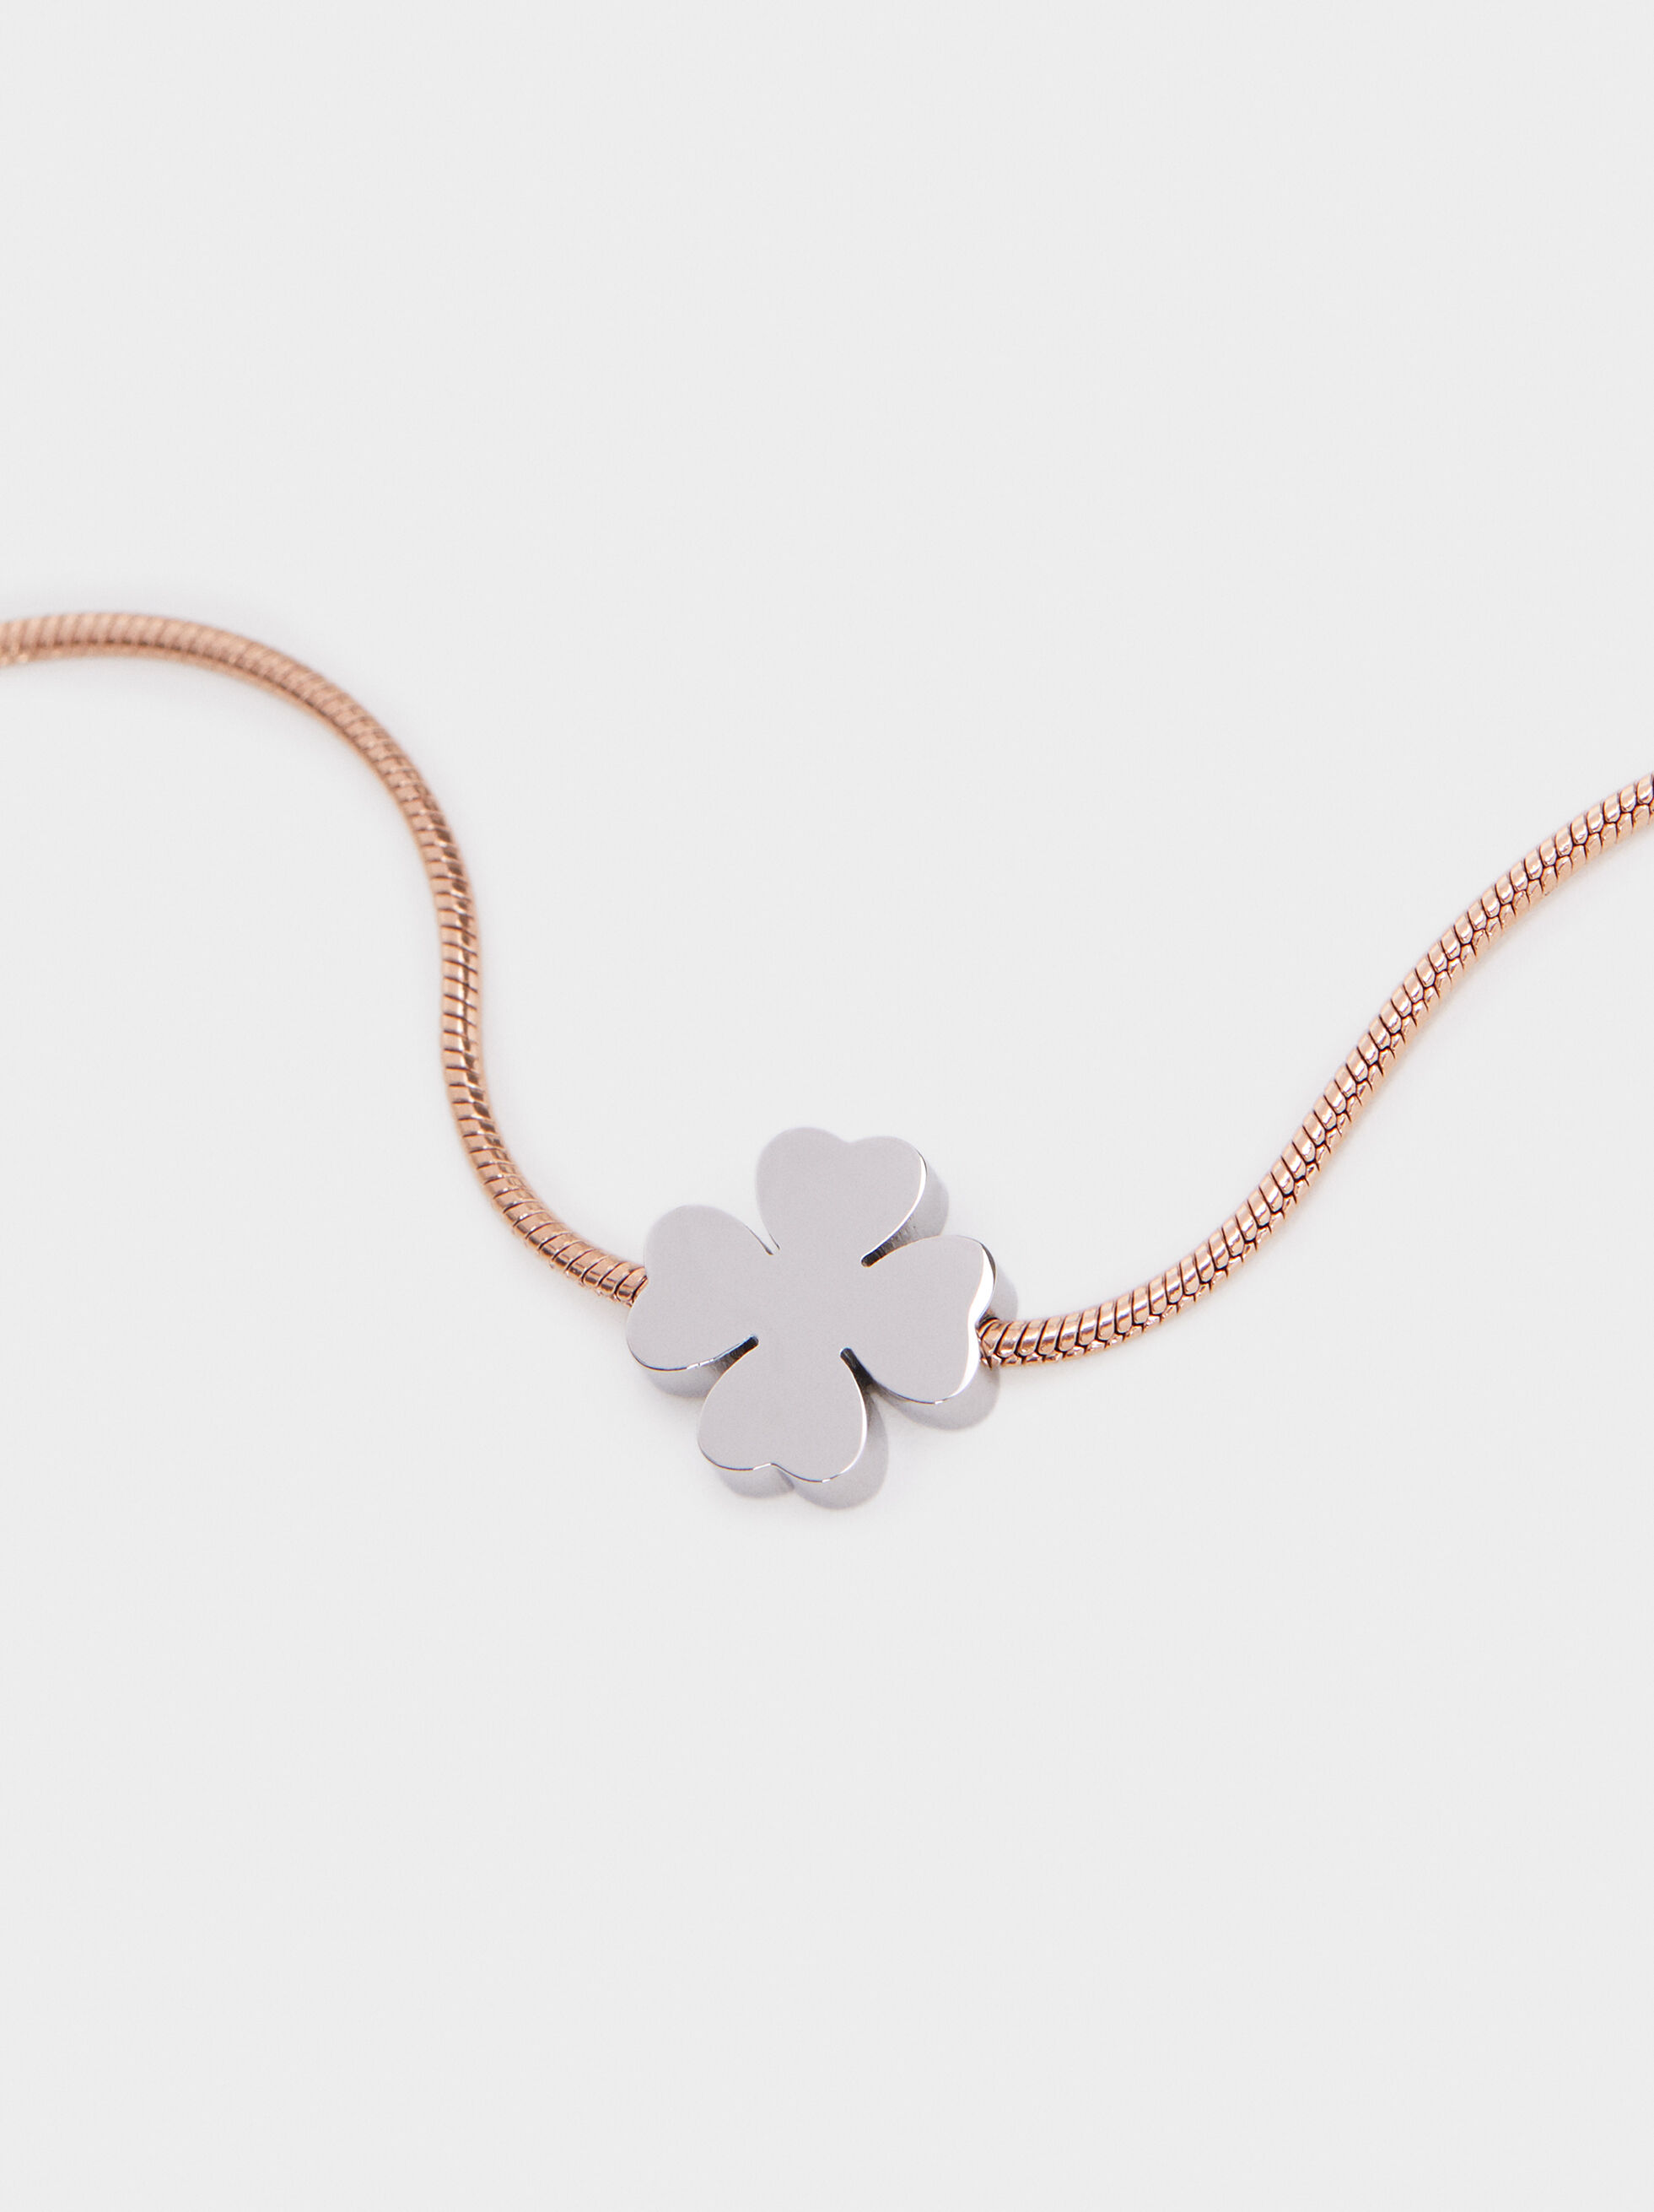 Adjustable Bracelet With Shamrock Detail, Orange, hi-res